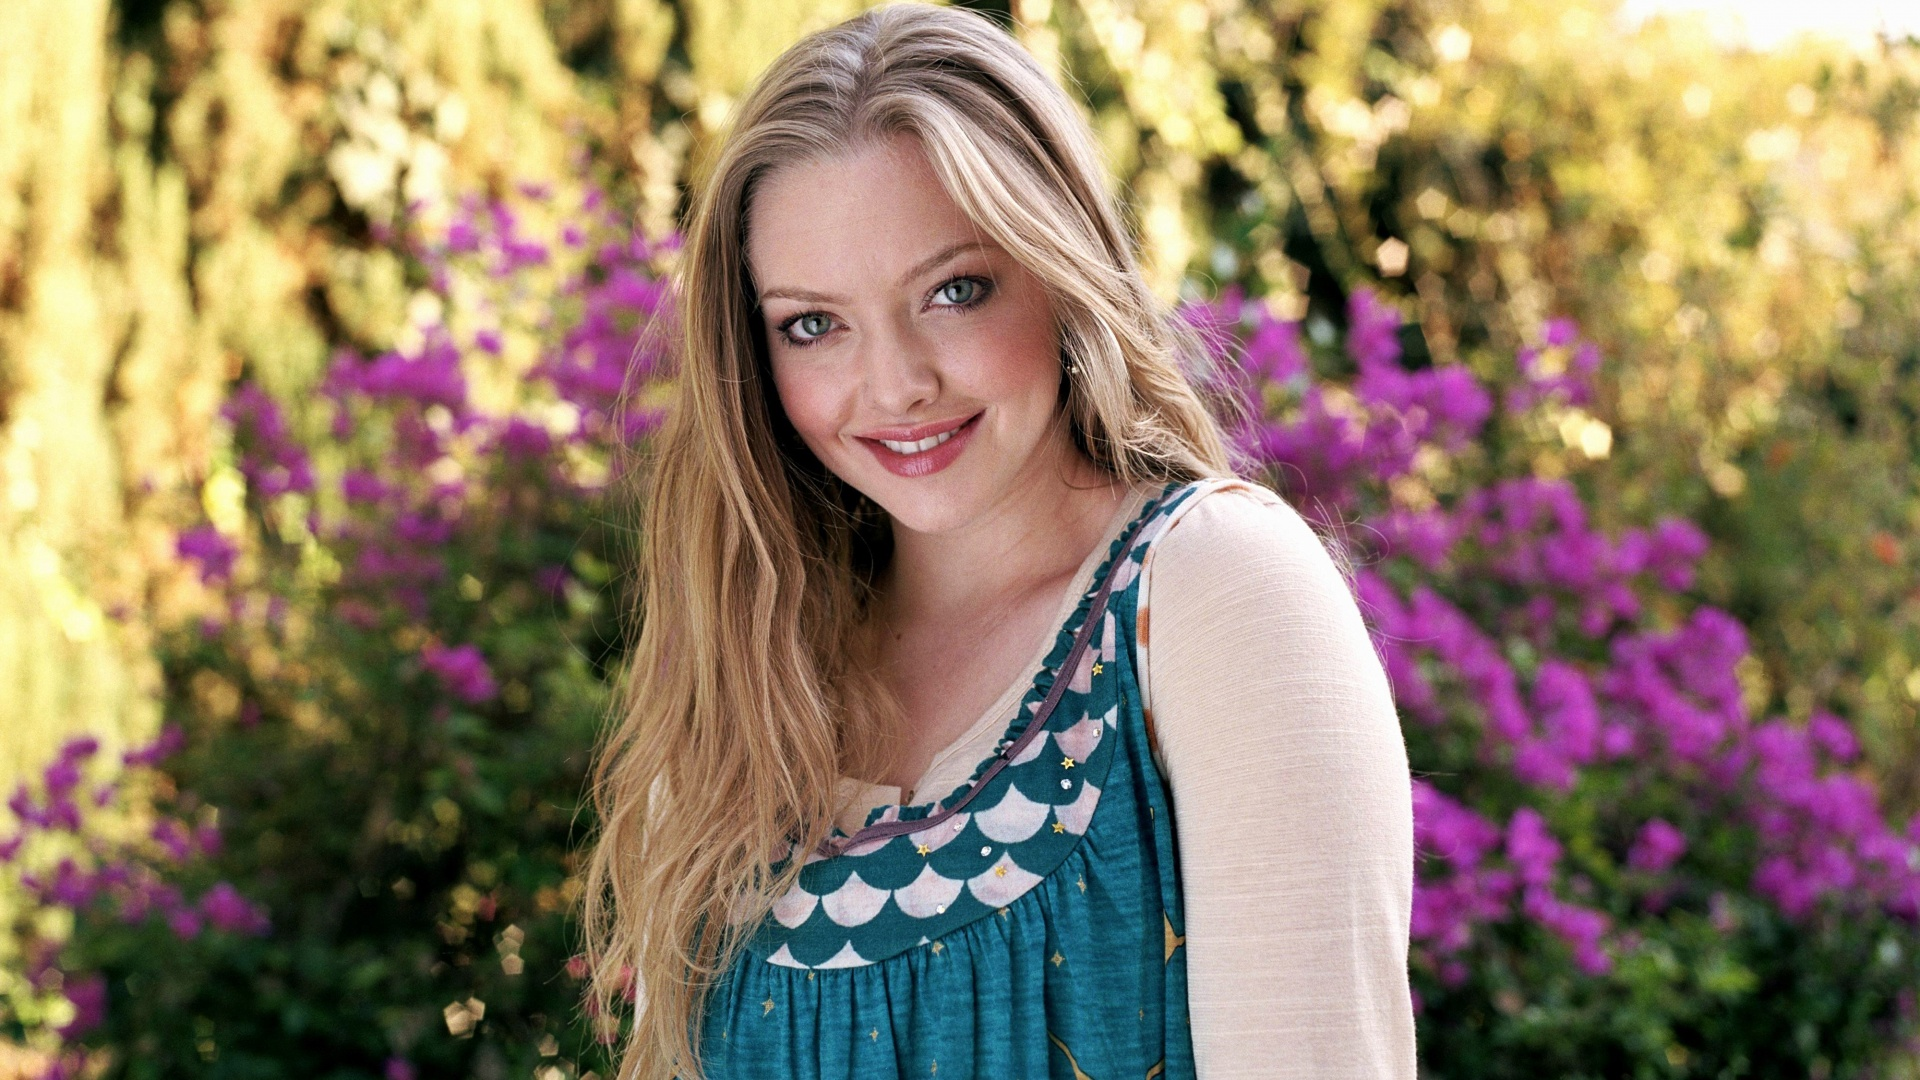 amanda seyfried images hd A6